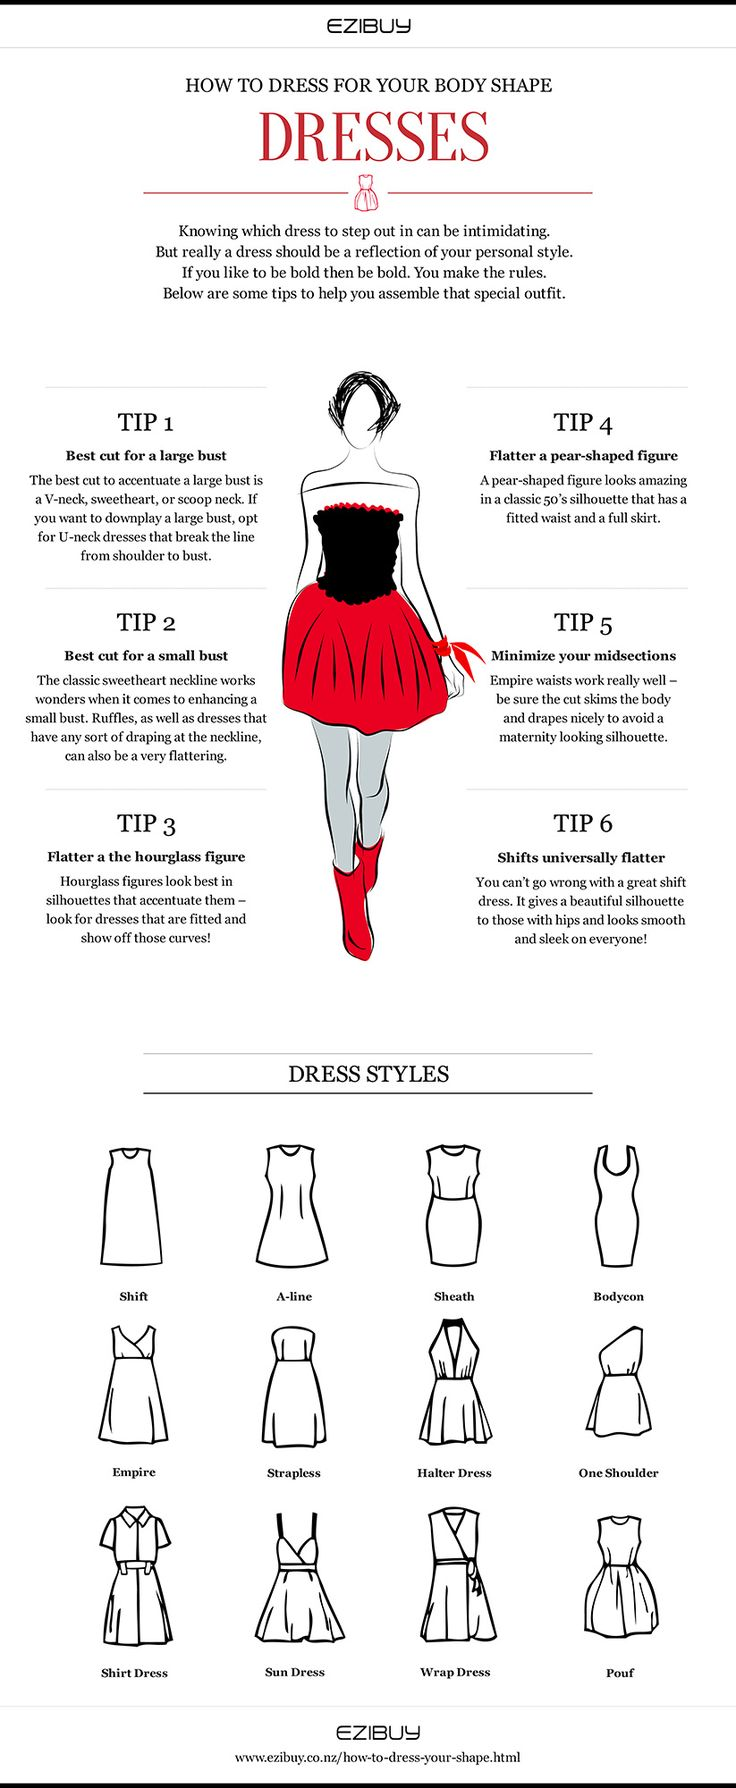 How to dress for your body shape : DRESS fashion tips! #MiracleDreamFashion #womensfashion #fashiontips #dress